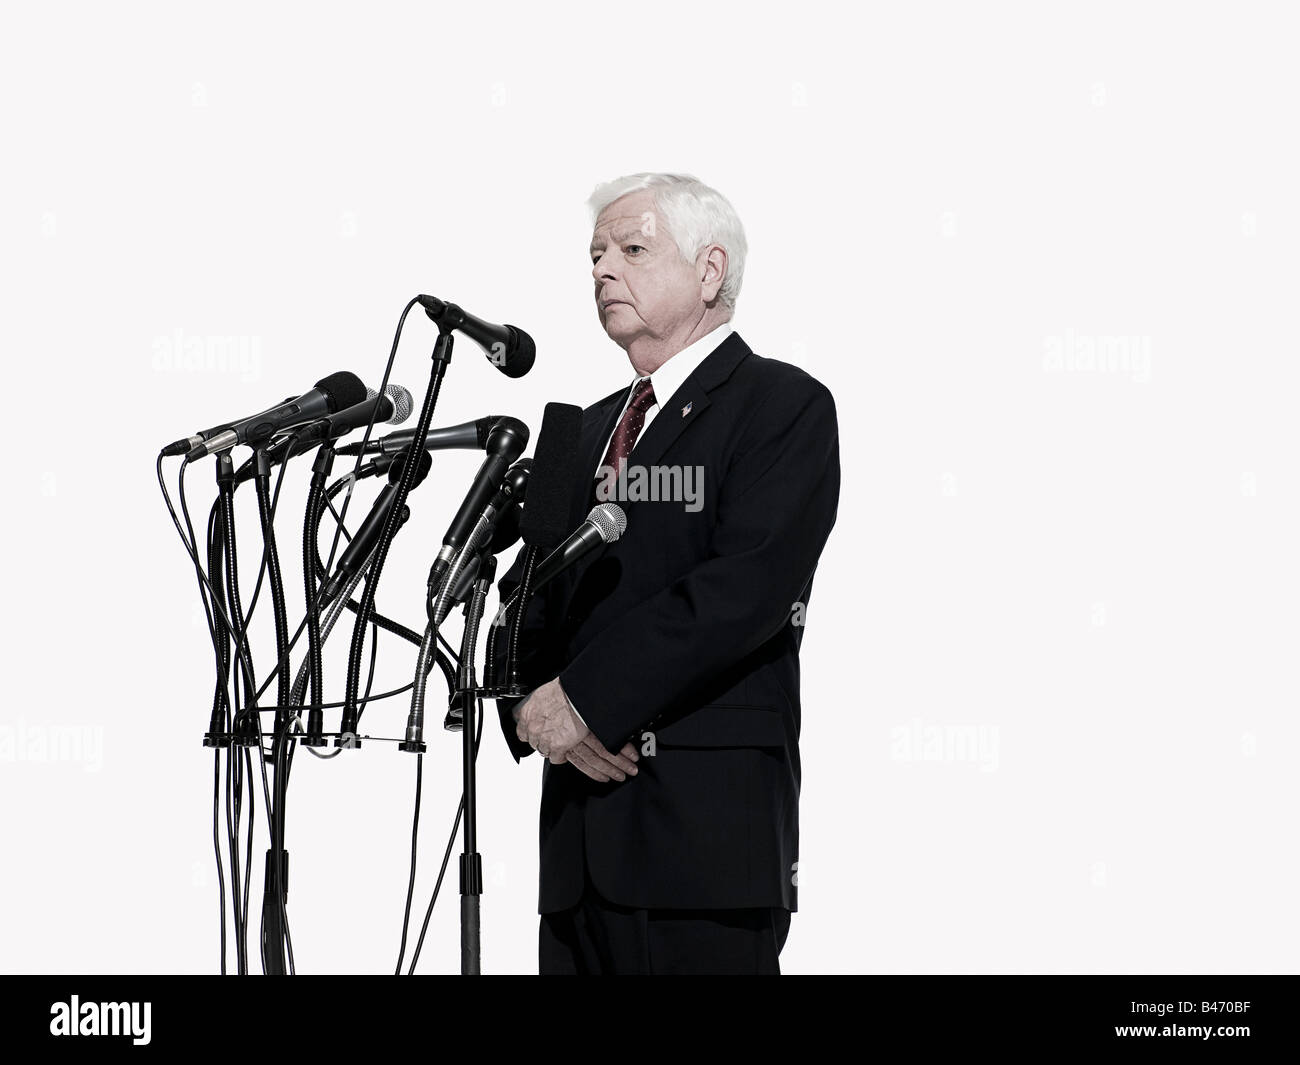 Politician and microphones Stock Photo